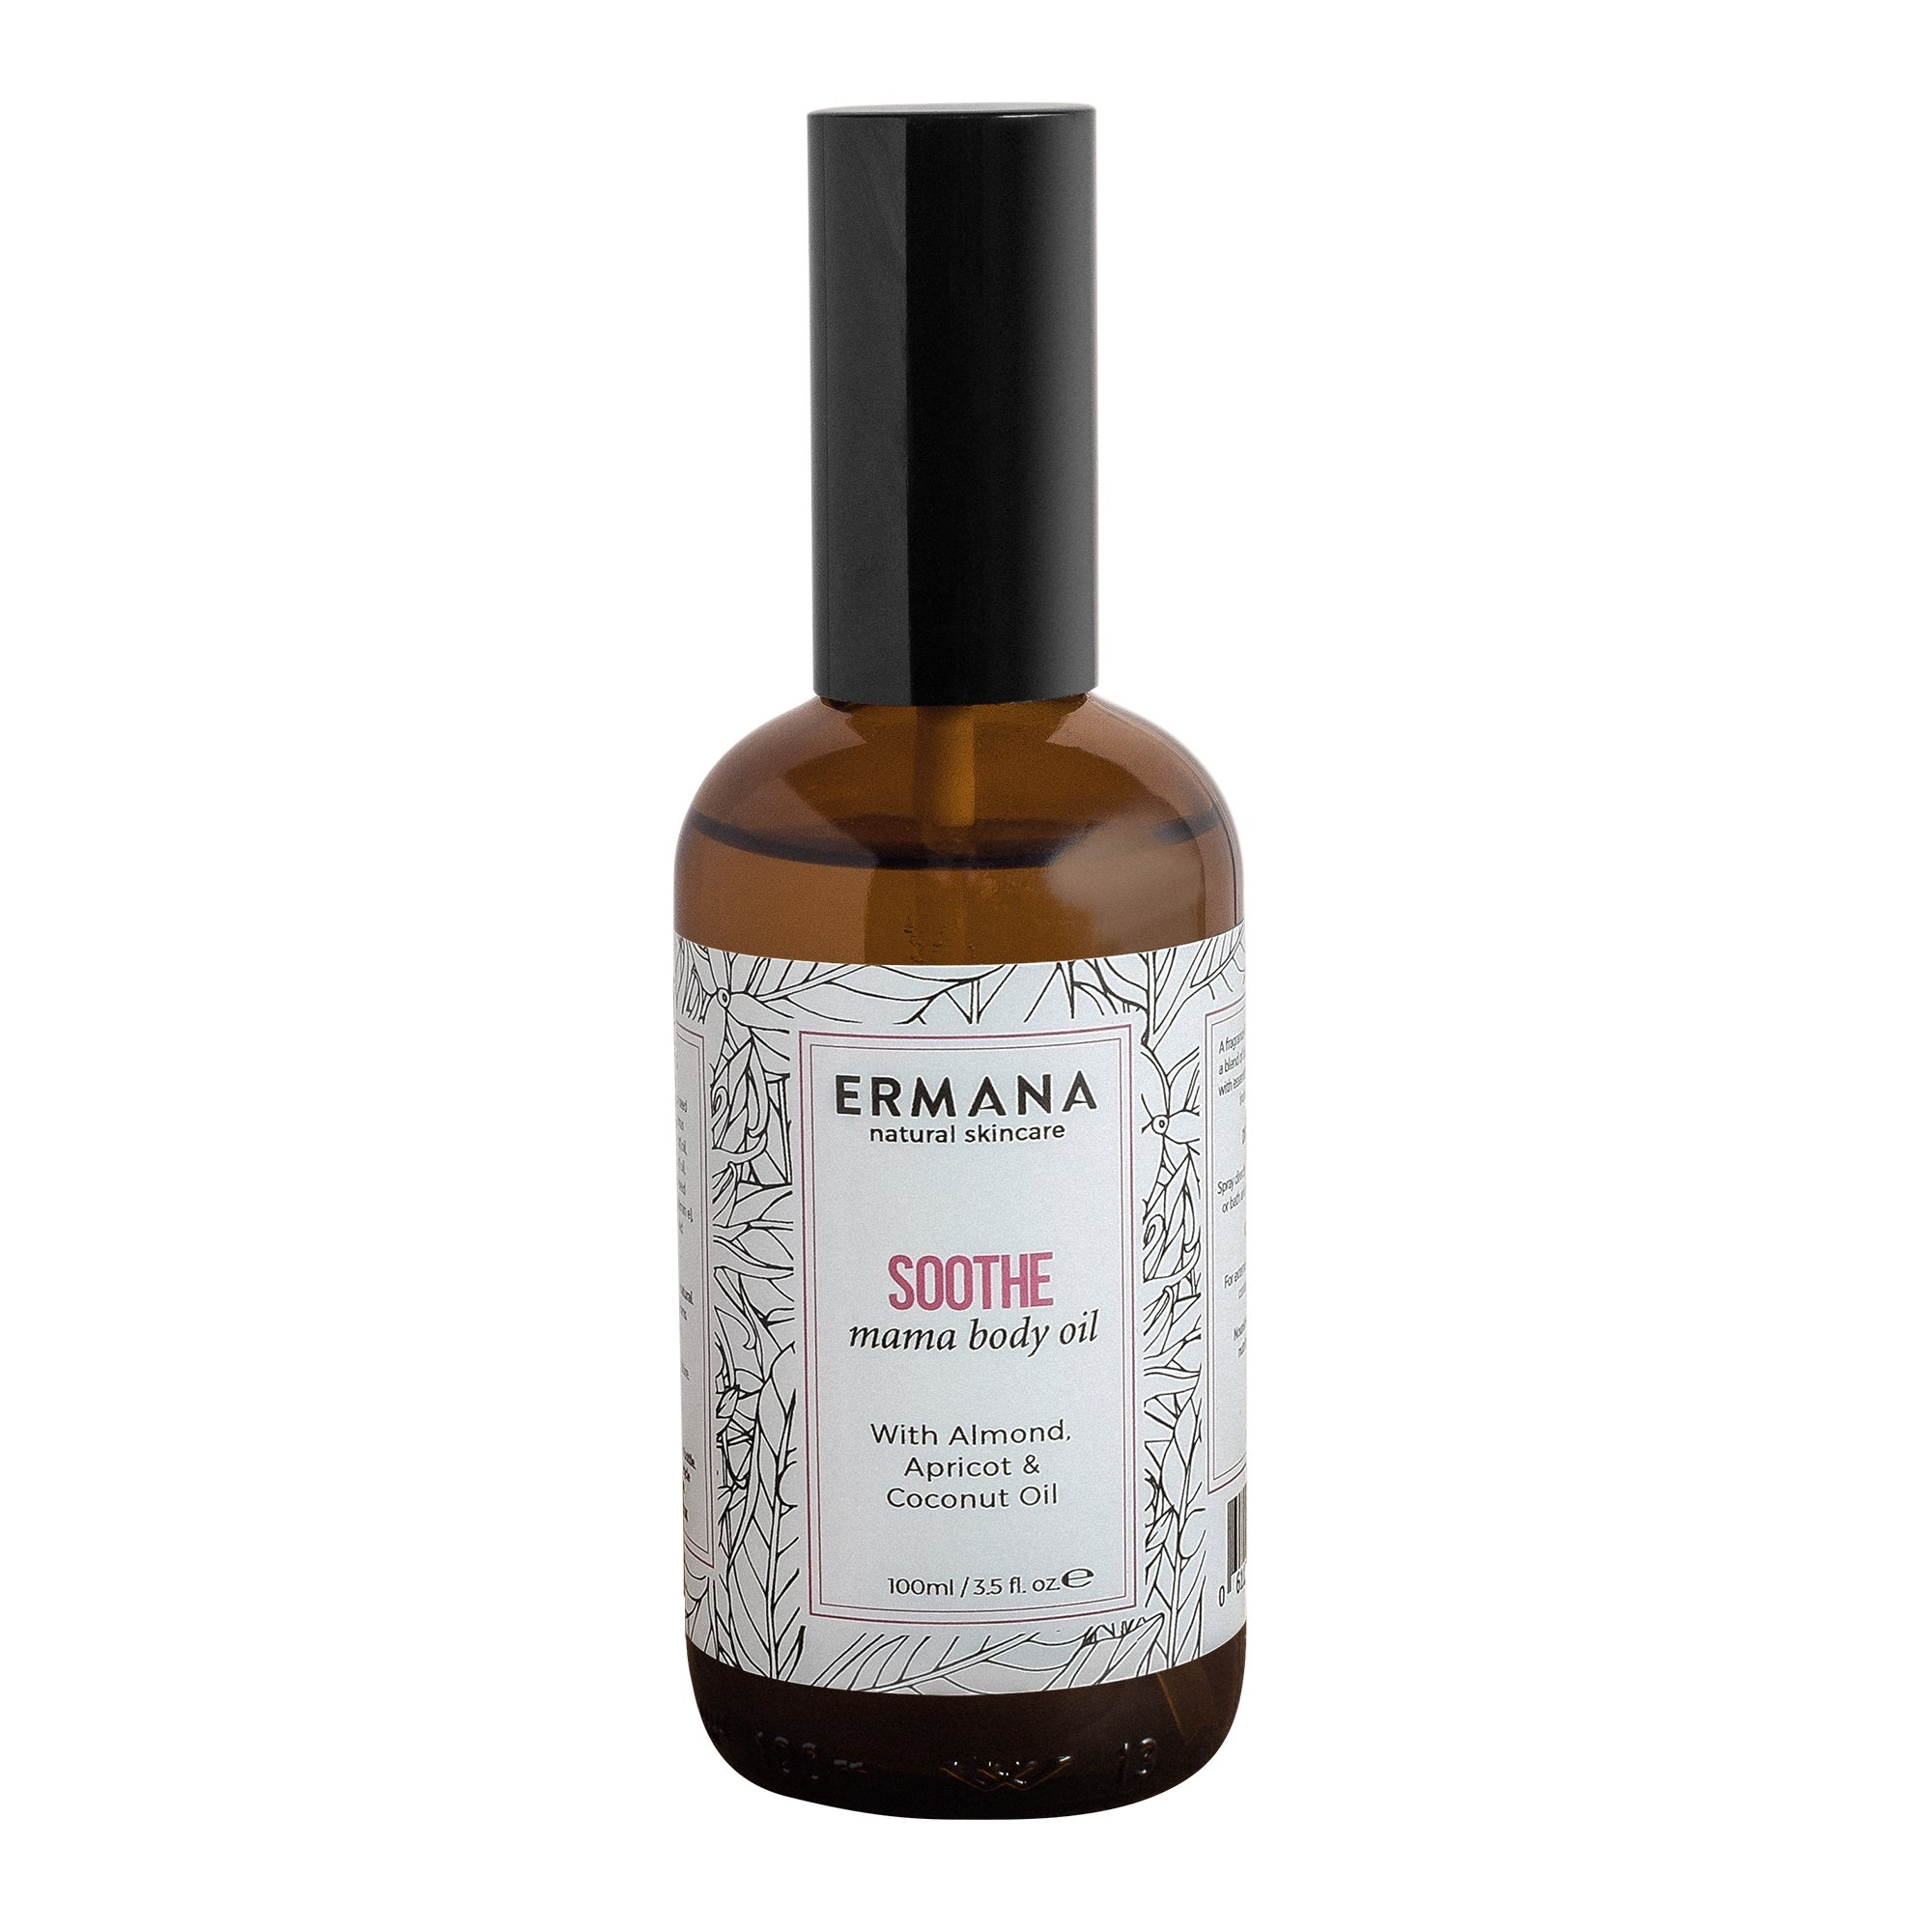 Ermana Soothe Body Oil Cutout